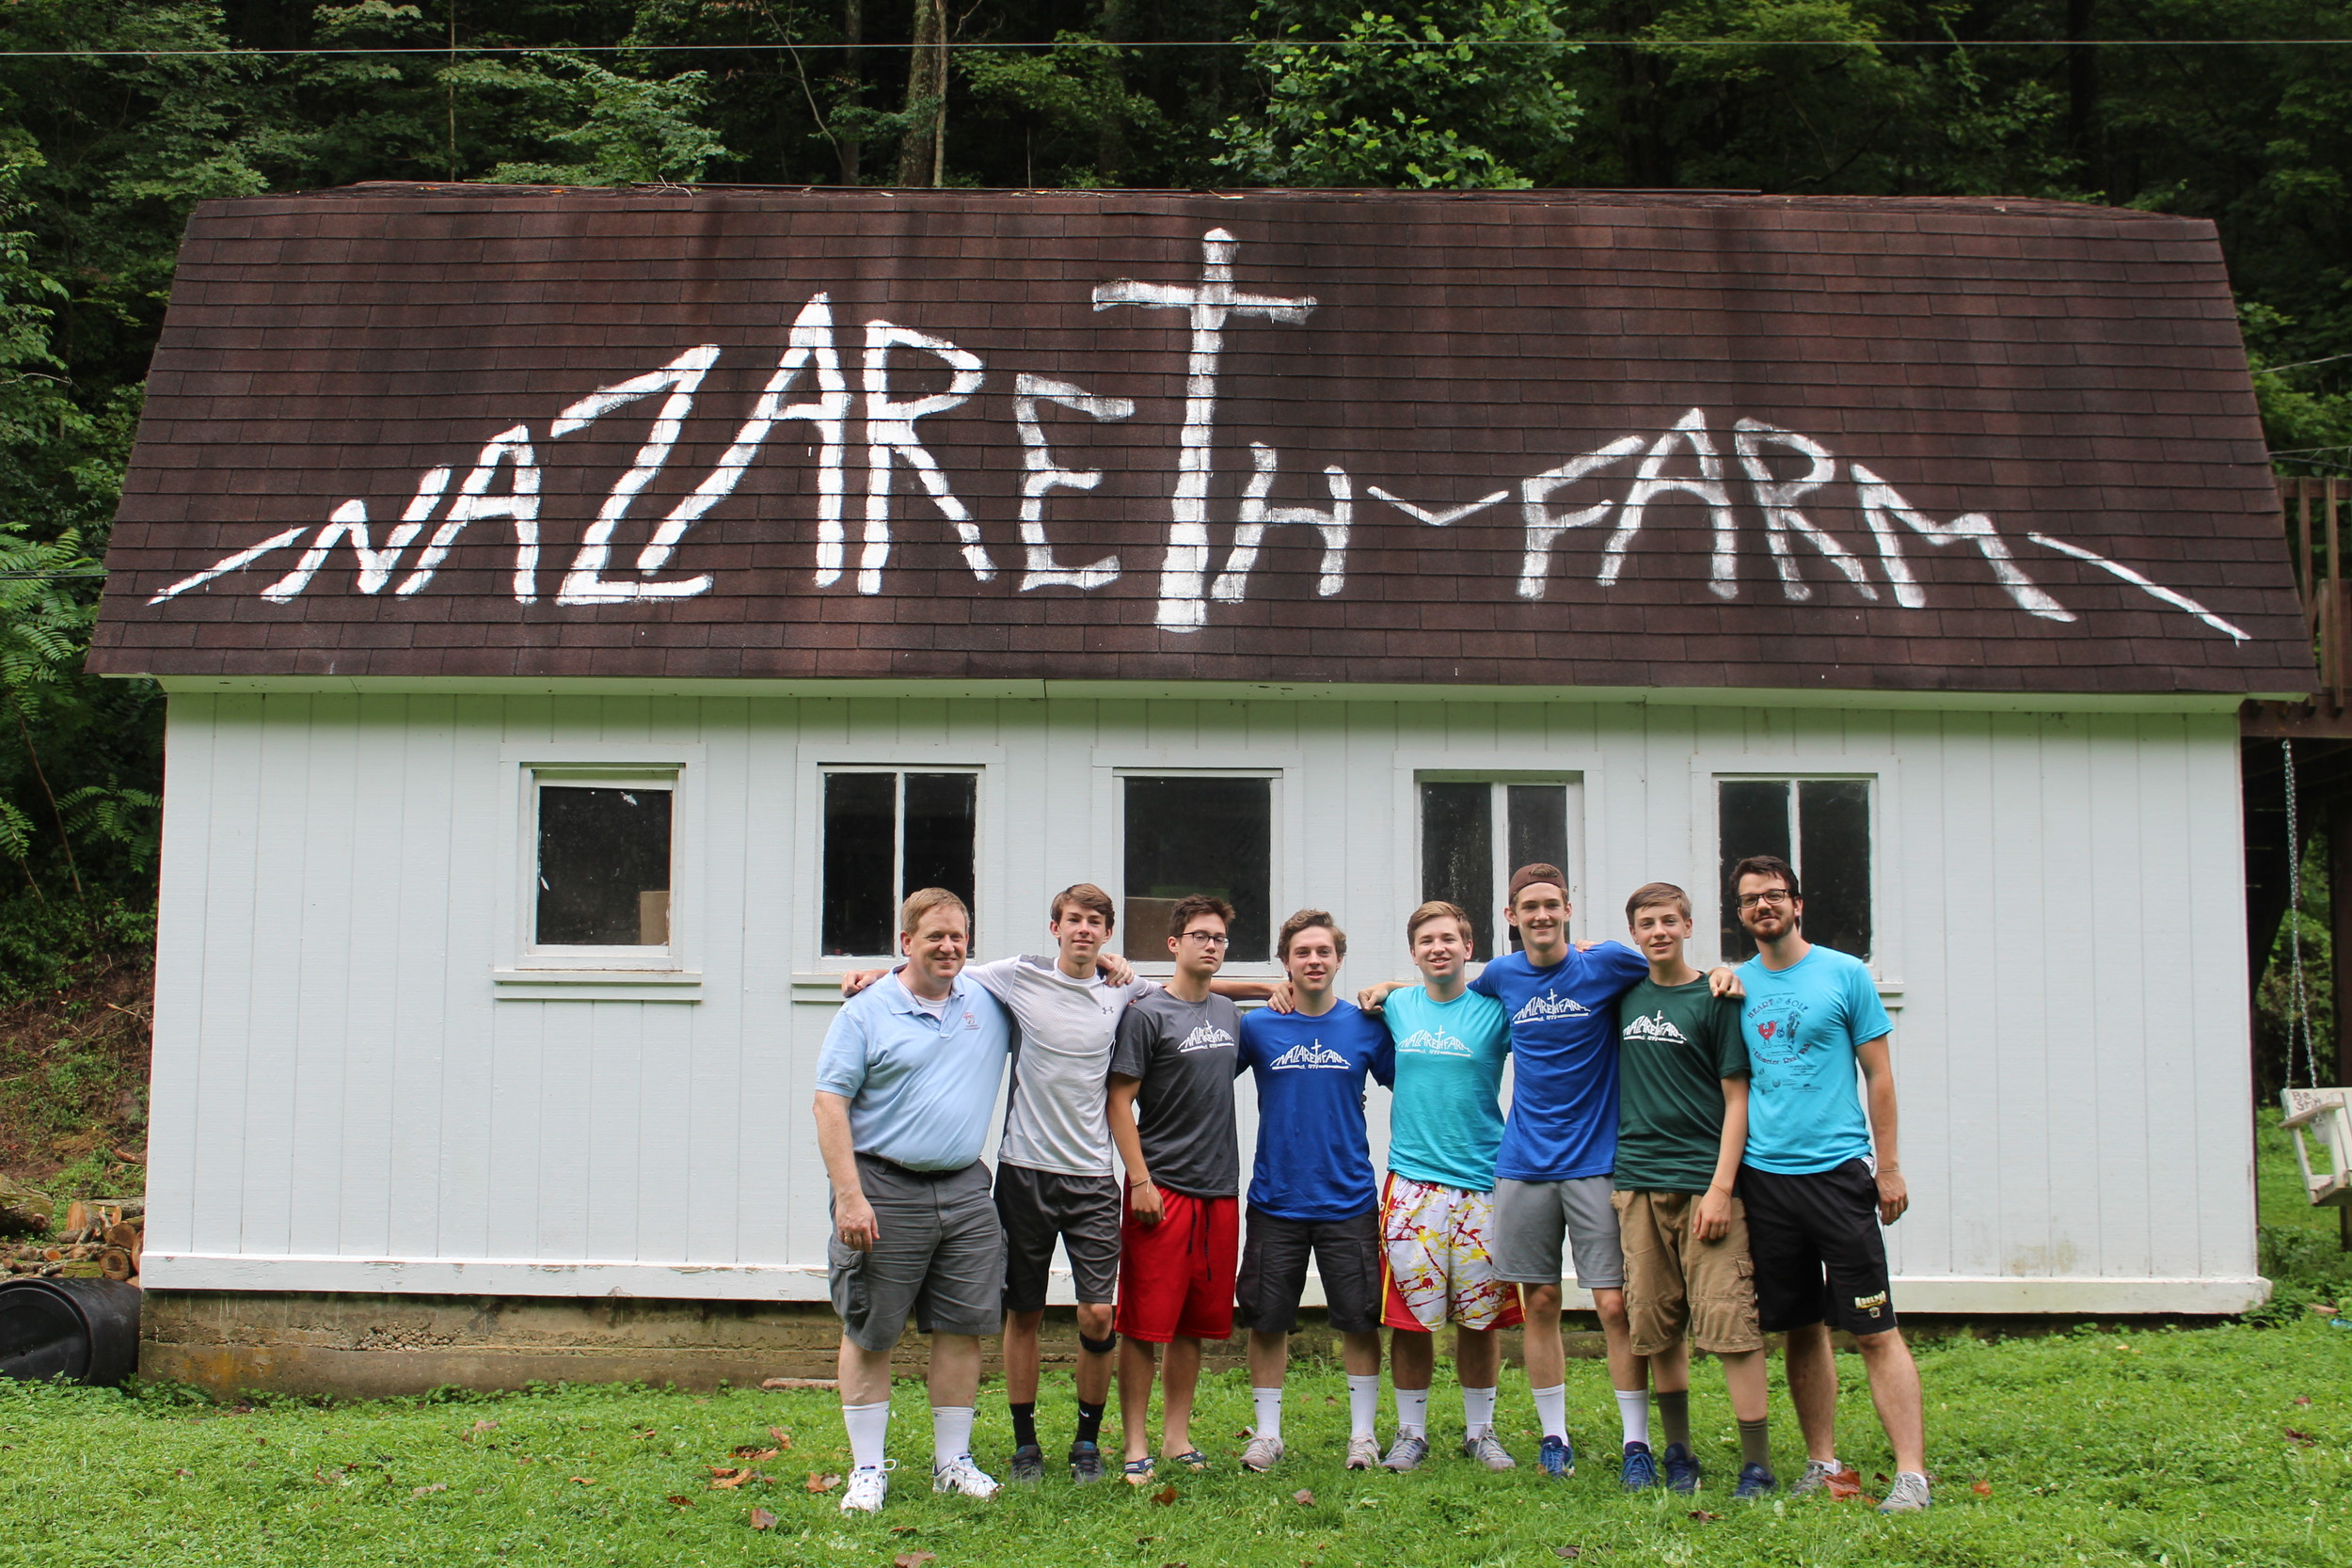 Brother Patrick Sarsfield, left, Nicholas Richardson, John Kenny, Jack Bingham, Aidan Fitzgerald, John Murphy, Brendan Romano and Daniel Haslbauer attended a weeklong community service retreat in West Virginia last month.